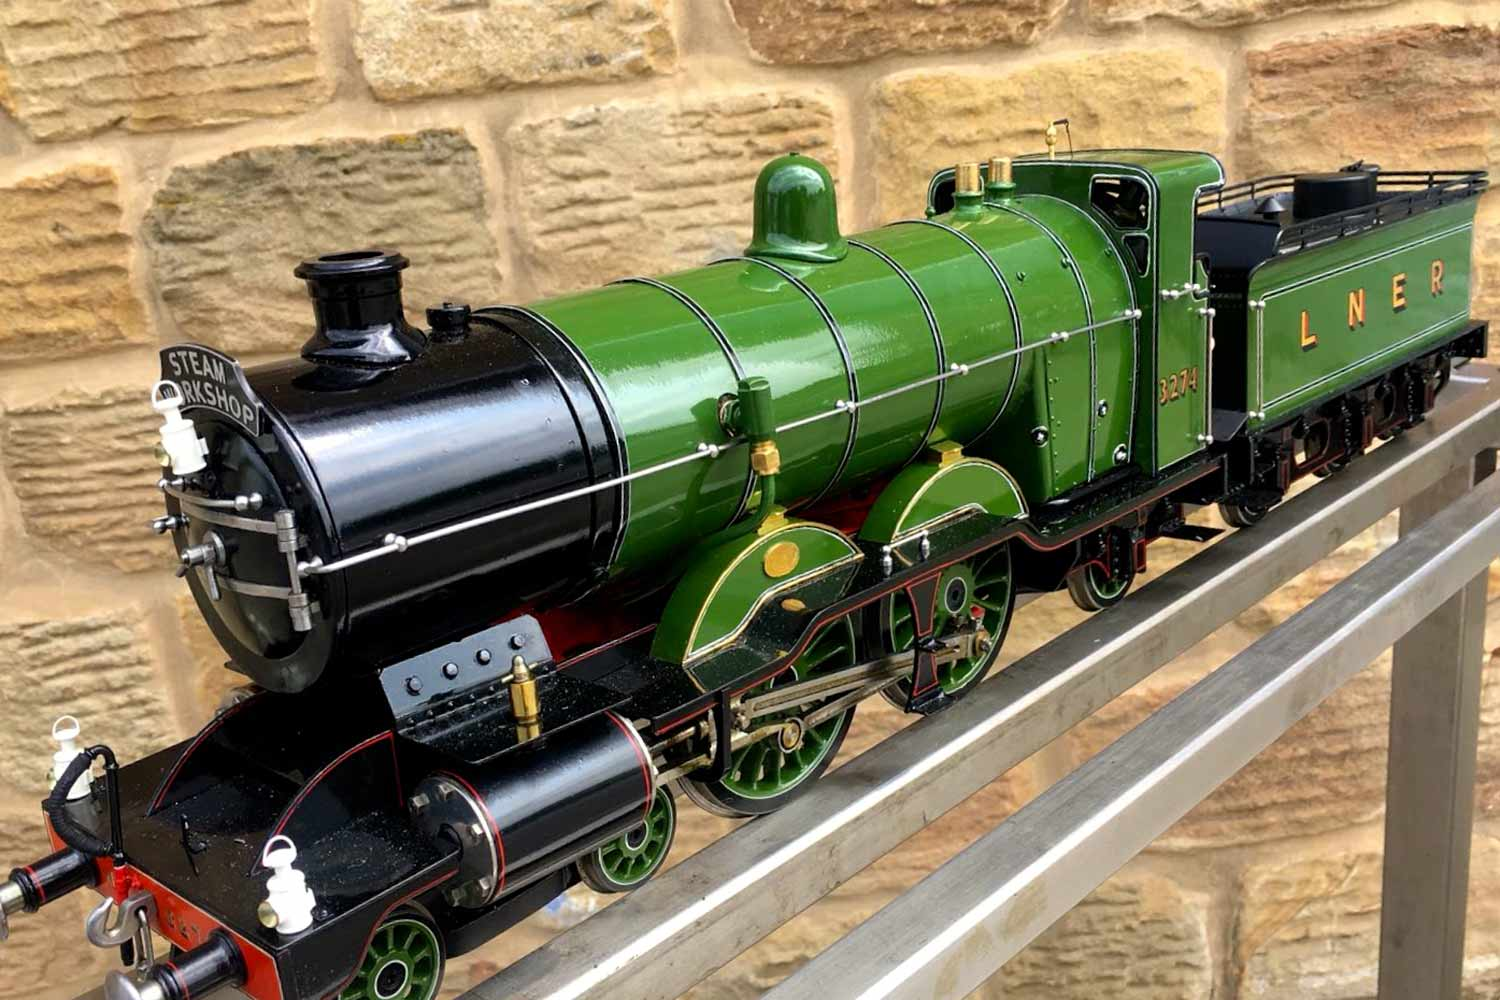 test 2-and-a-half-inch-gauge-3-GNR-C1-Atlantic-Ayesha-live-steam-locomotive-for-sale-07